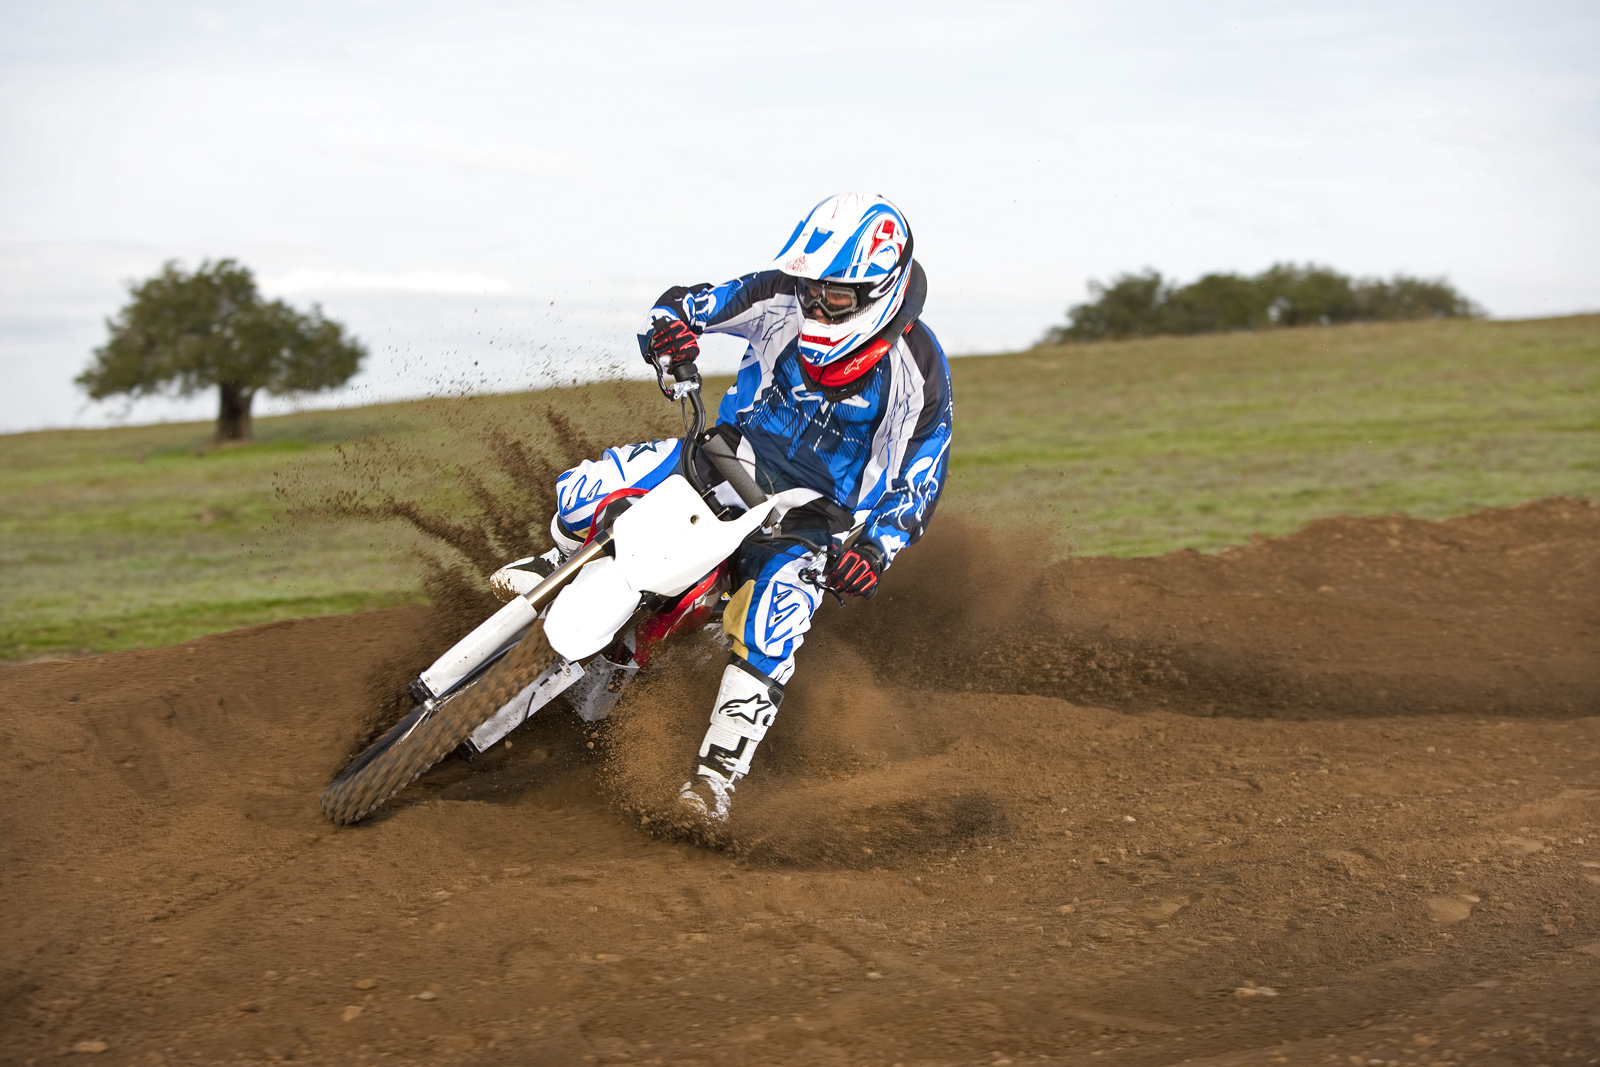 2010 Zero MX Electric Motorcycle: Zaca Station - Rider Hits Corner